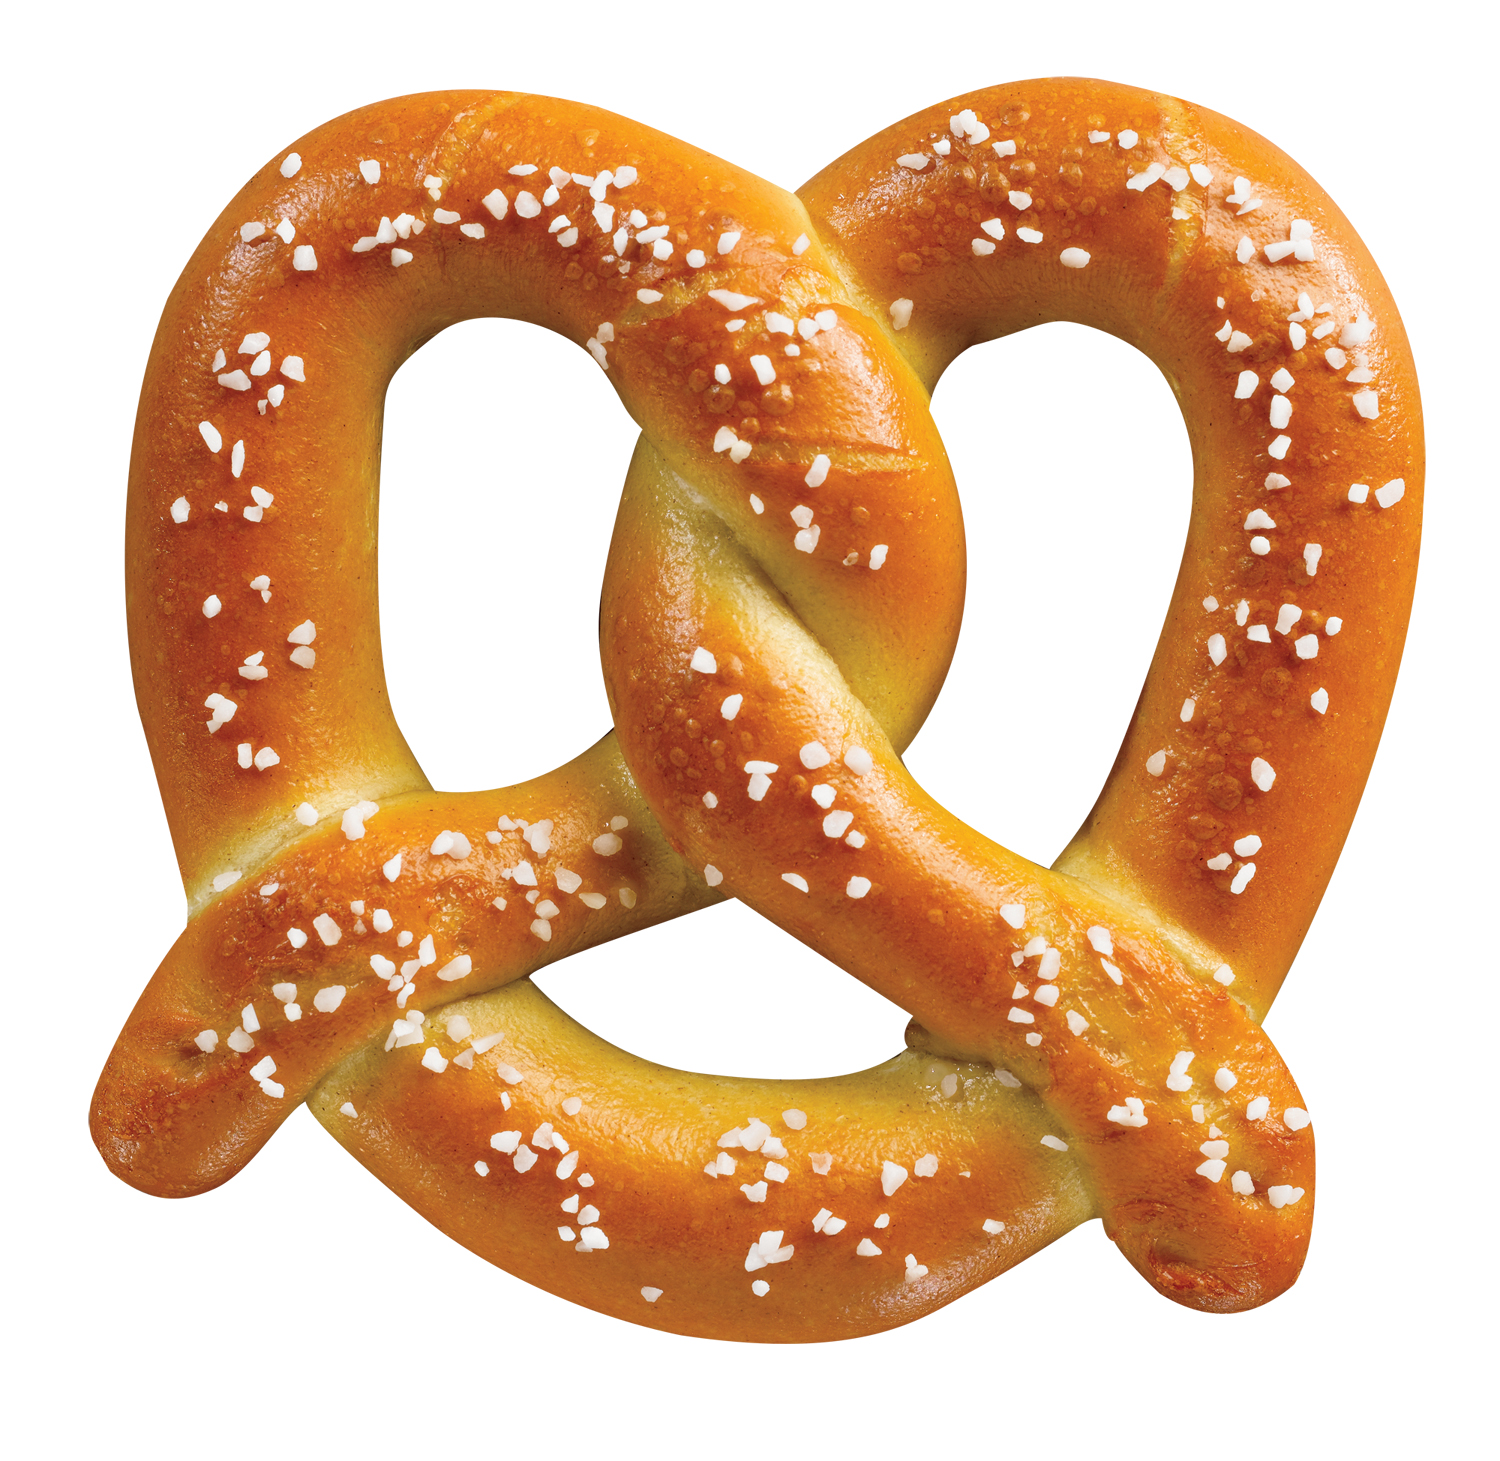 ... fresh pretzels or packaged small pretzels (that you eat like chips